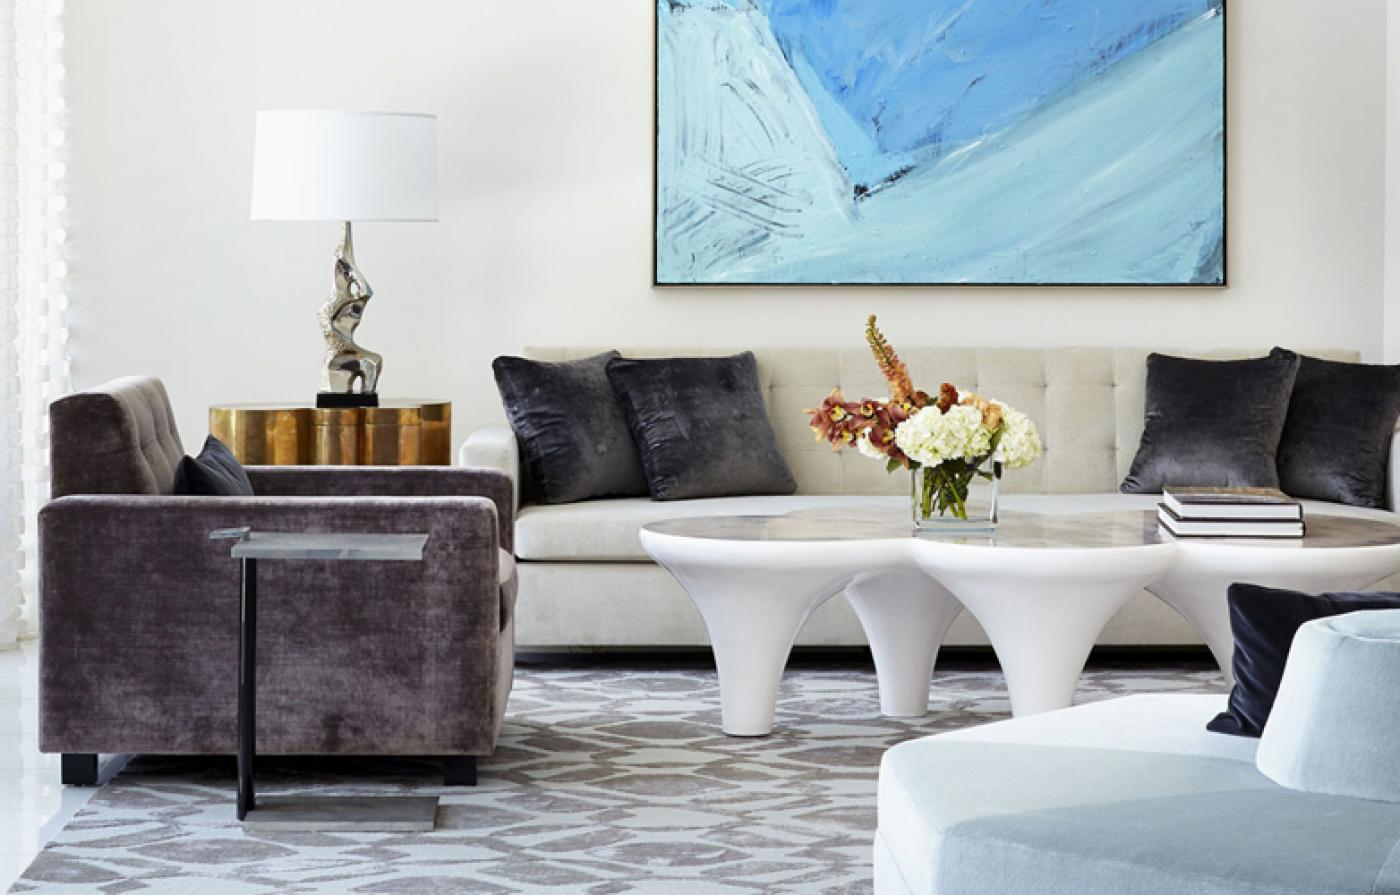 Designer QnA: Rob Brown and Todd Davis are the Yin and Yang of Interior Design